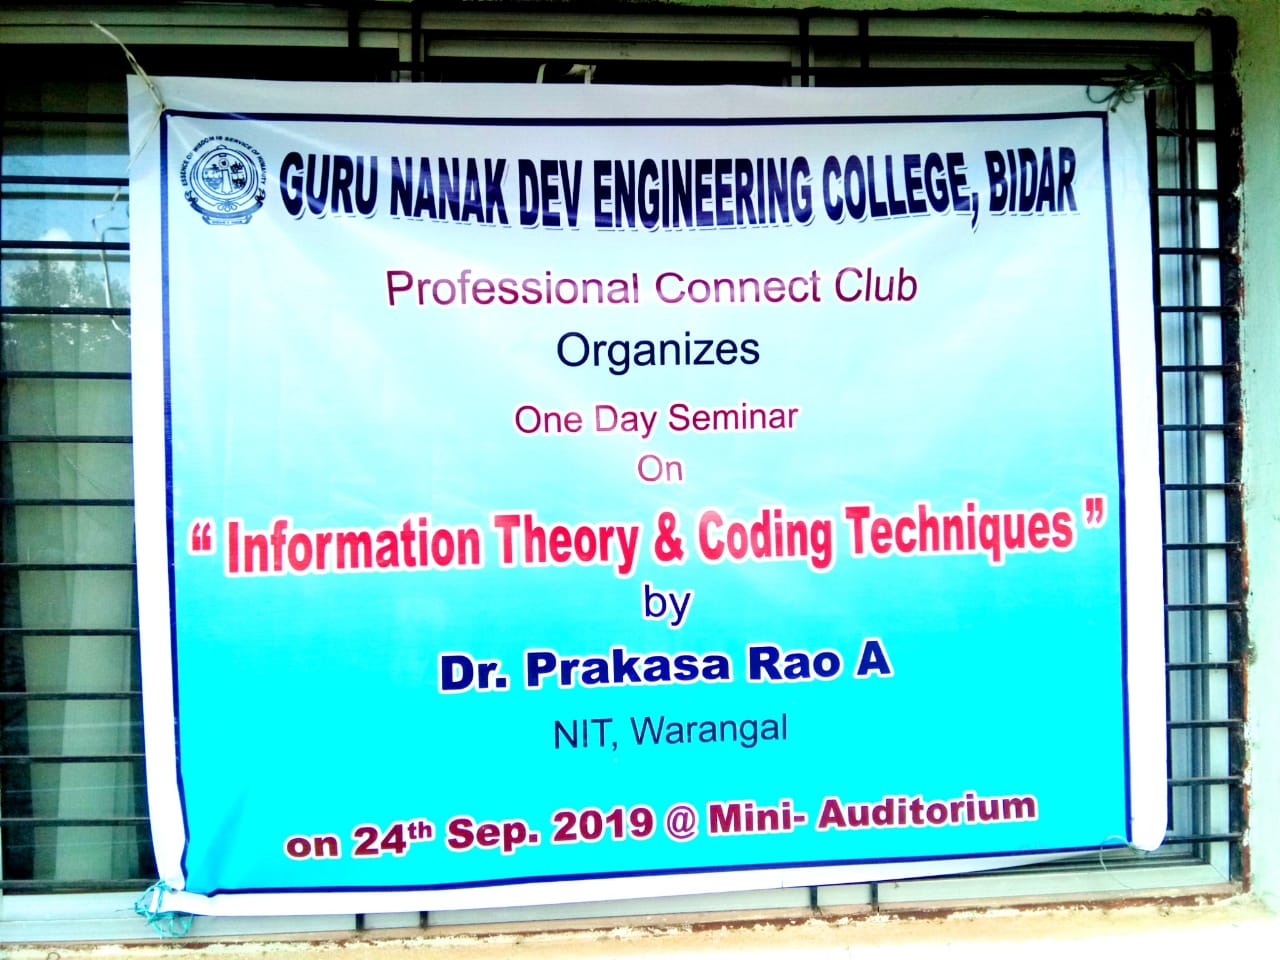 Professional connect club has organized one day seminar on information theory and coding